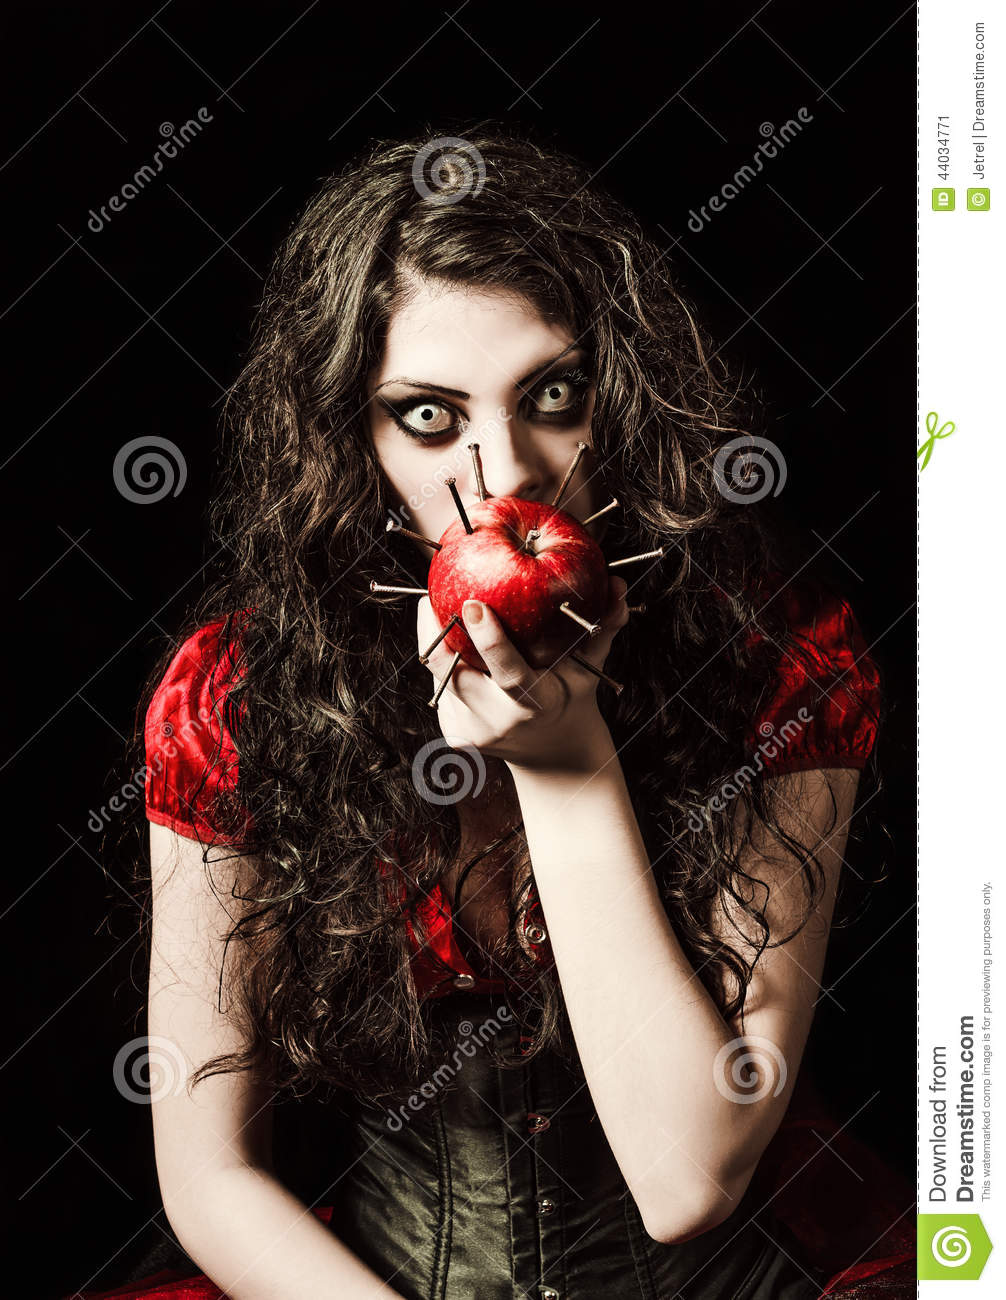 Horror shot: strange scary girl eats apple studded with nails